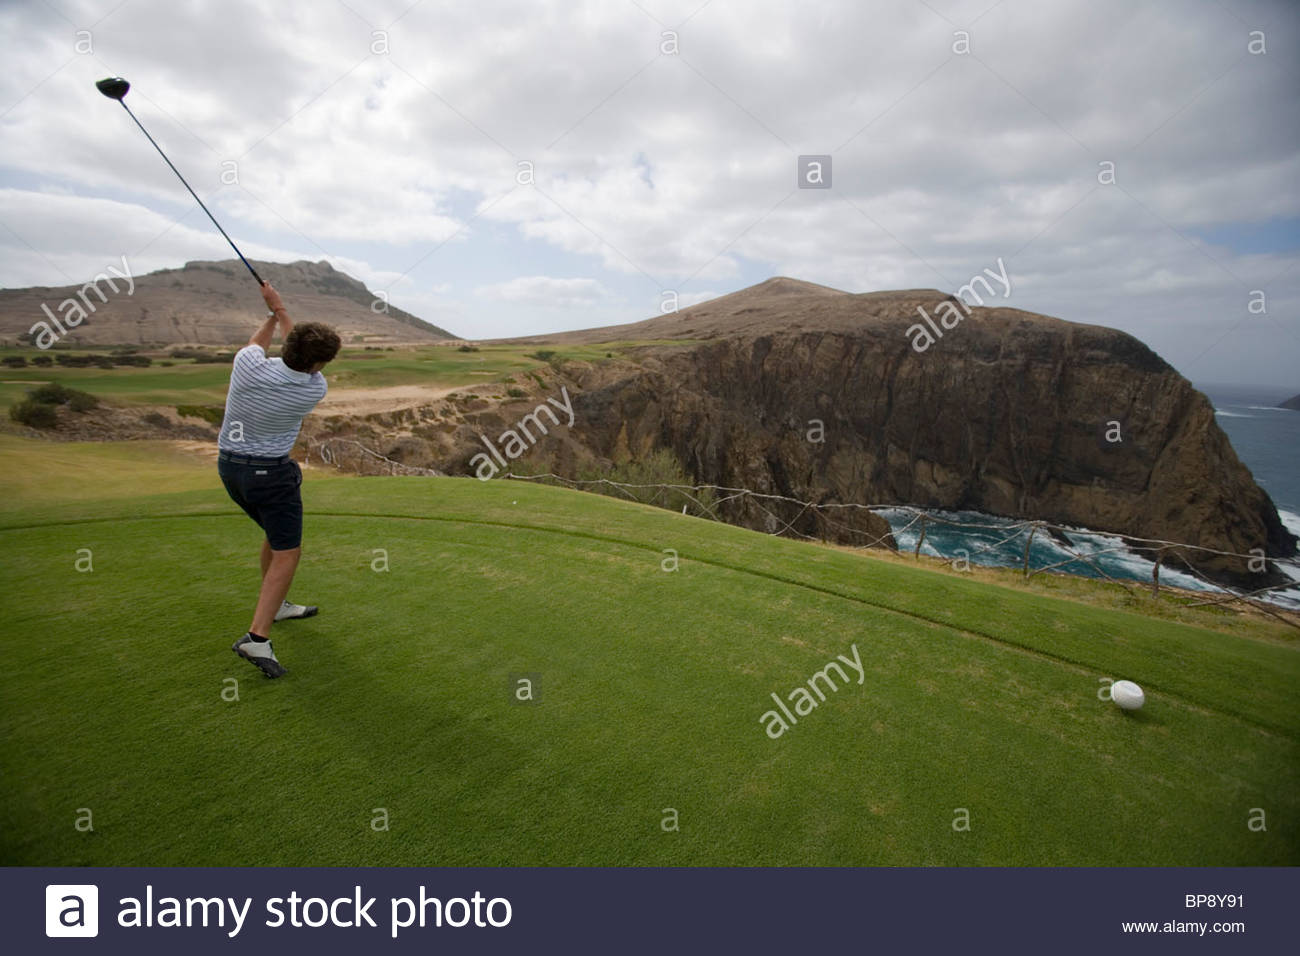 Golfer tees off at hole 14 at Porto Santo Golfe Golf Course, Porto Santo, near Madeira, Portugal - Stock Image